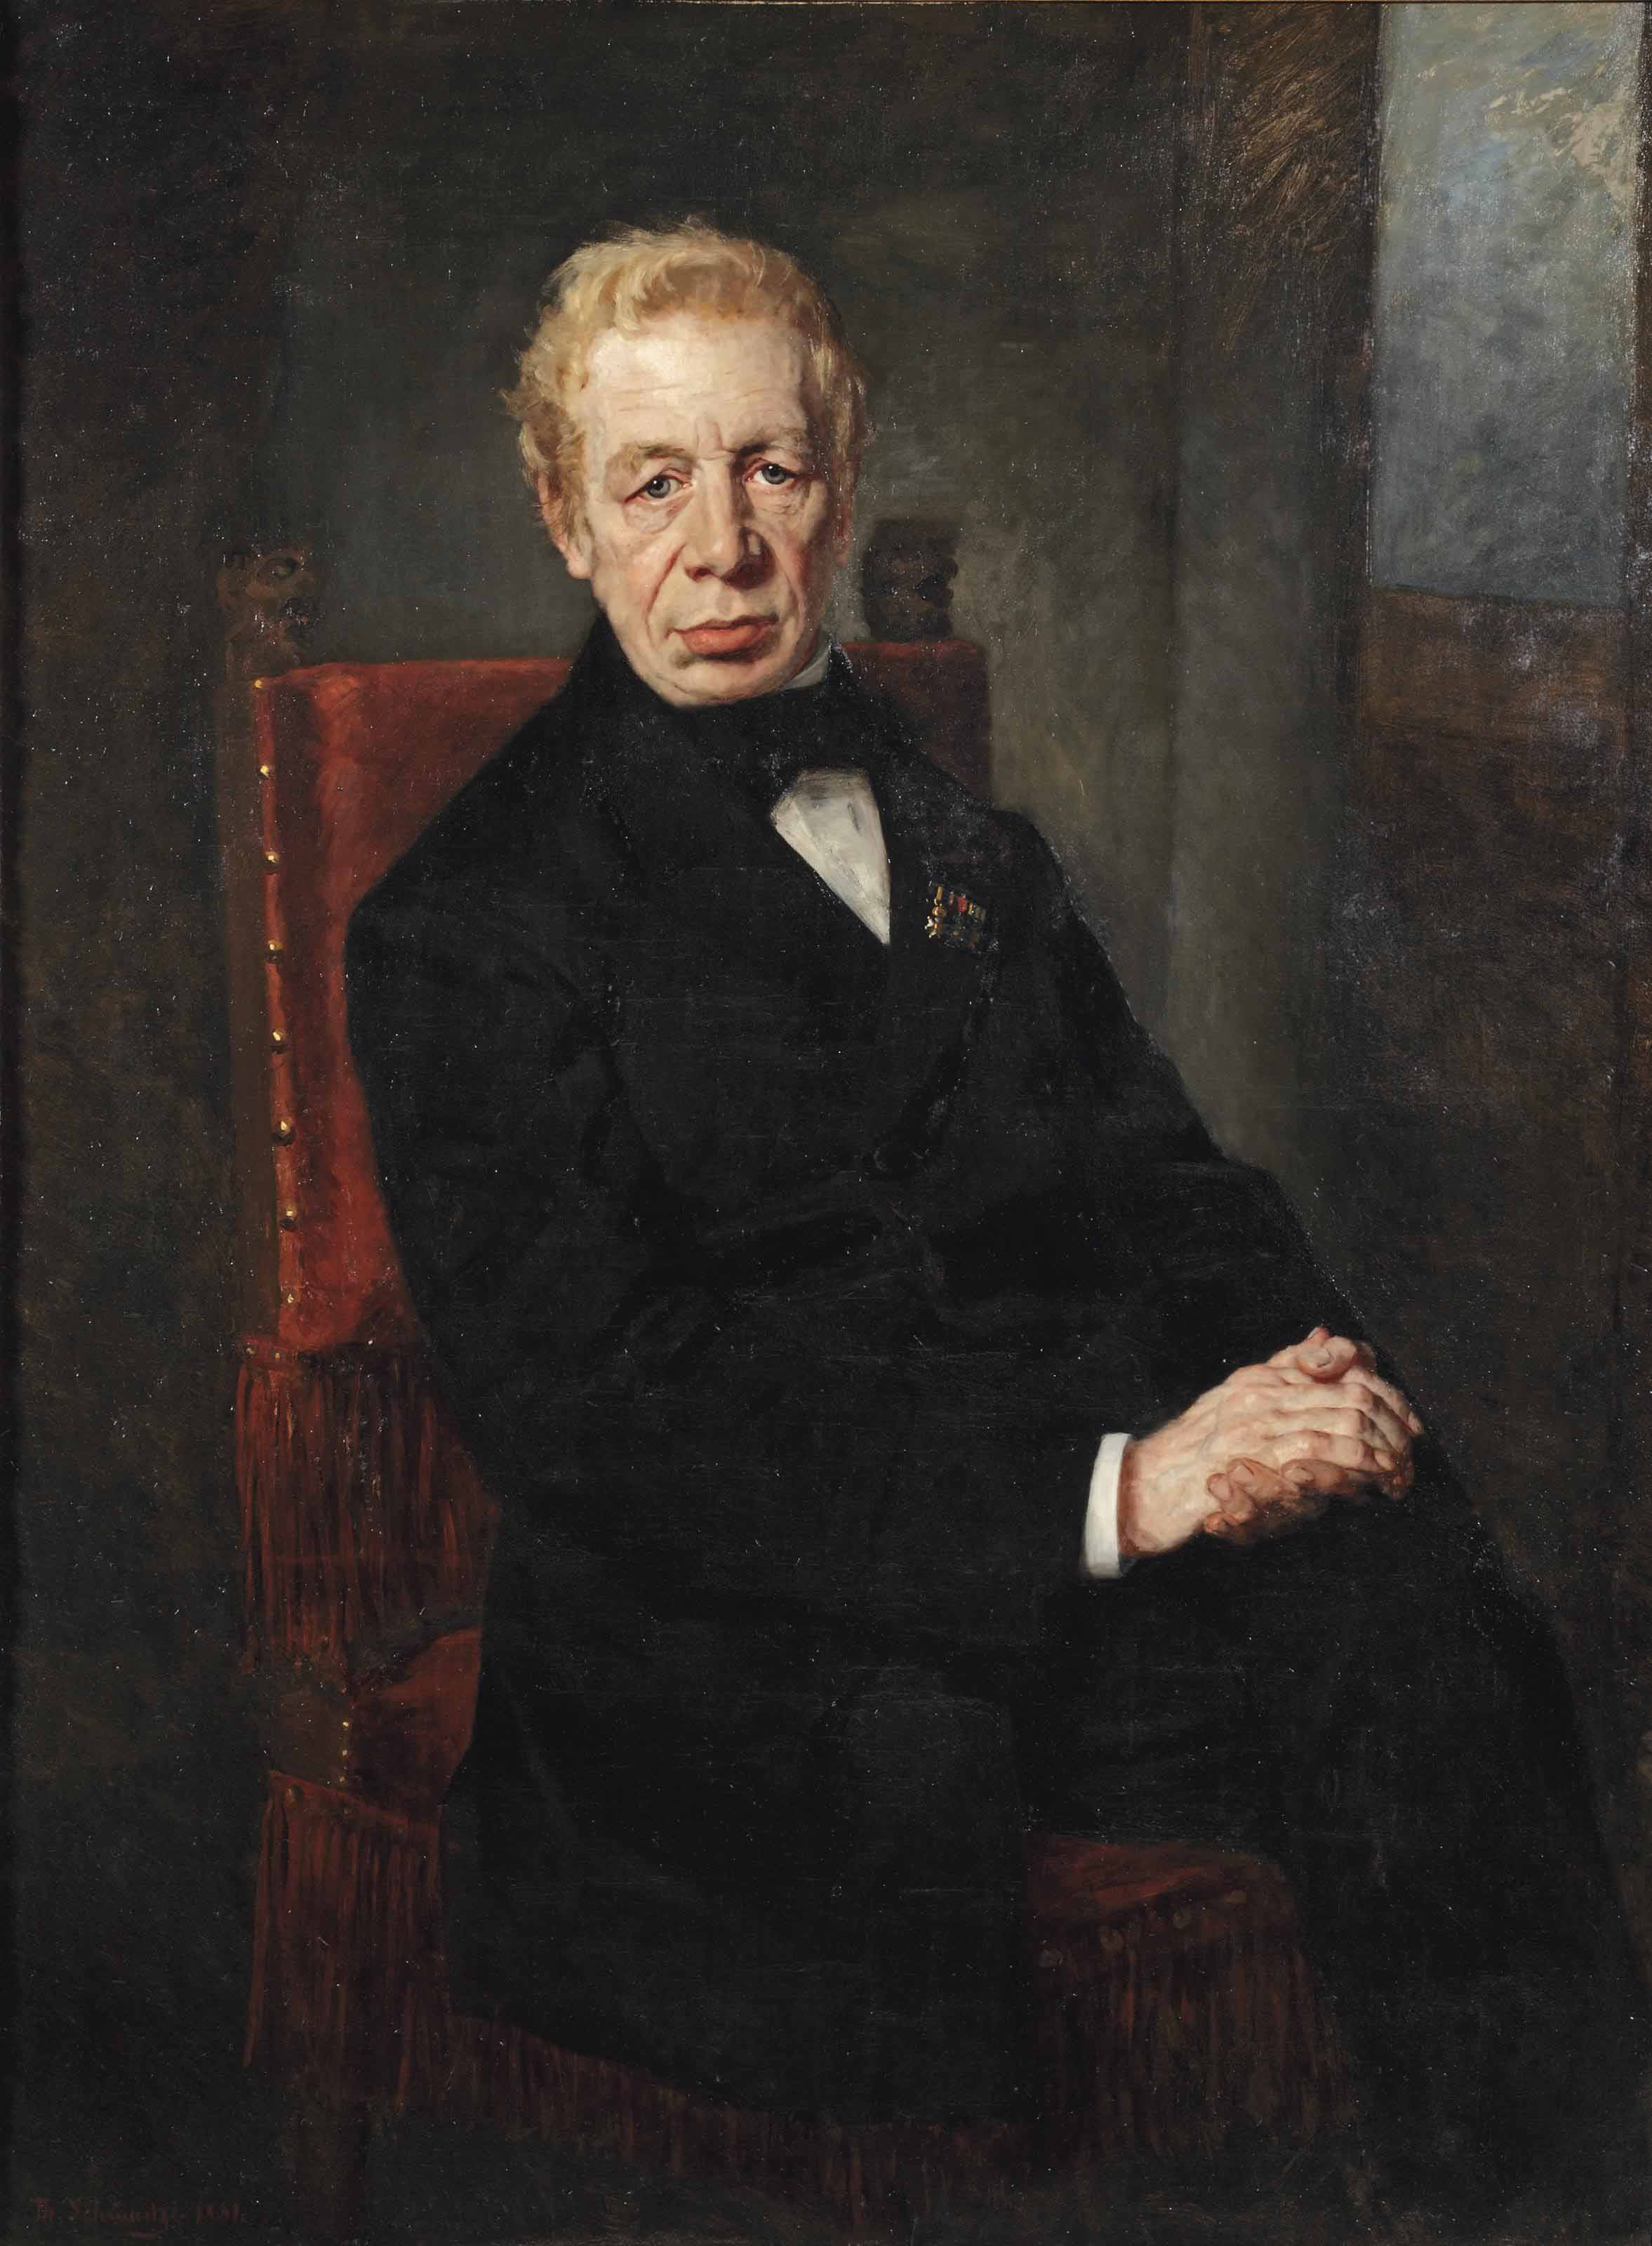 Portrait of Willem Carel Pieter Toewater (1810-1882), three-quarter-length, in a black costume seated on a chair